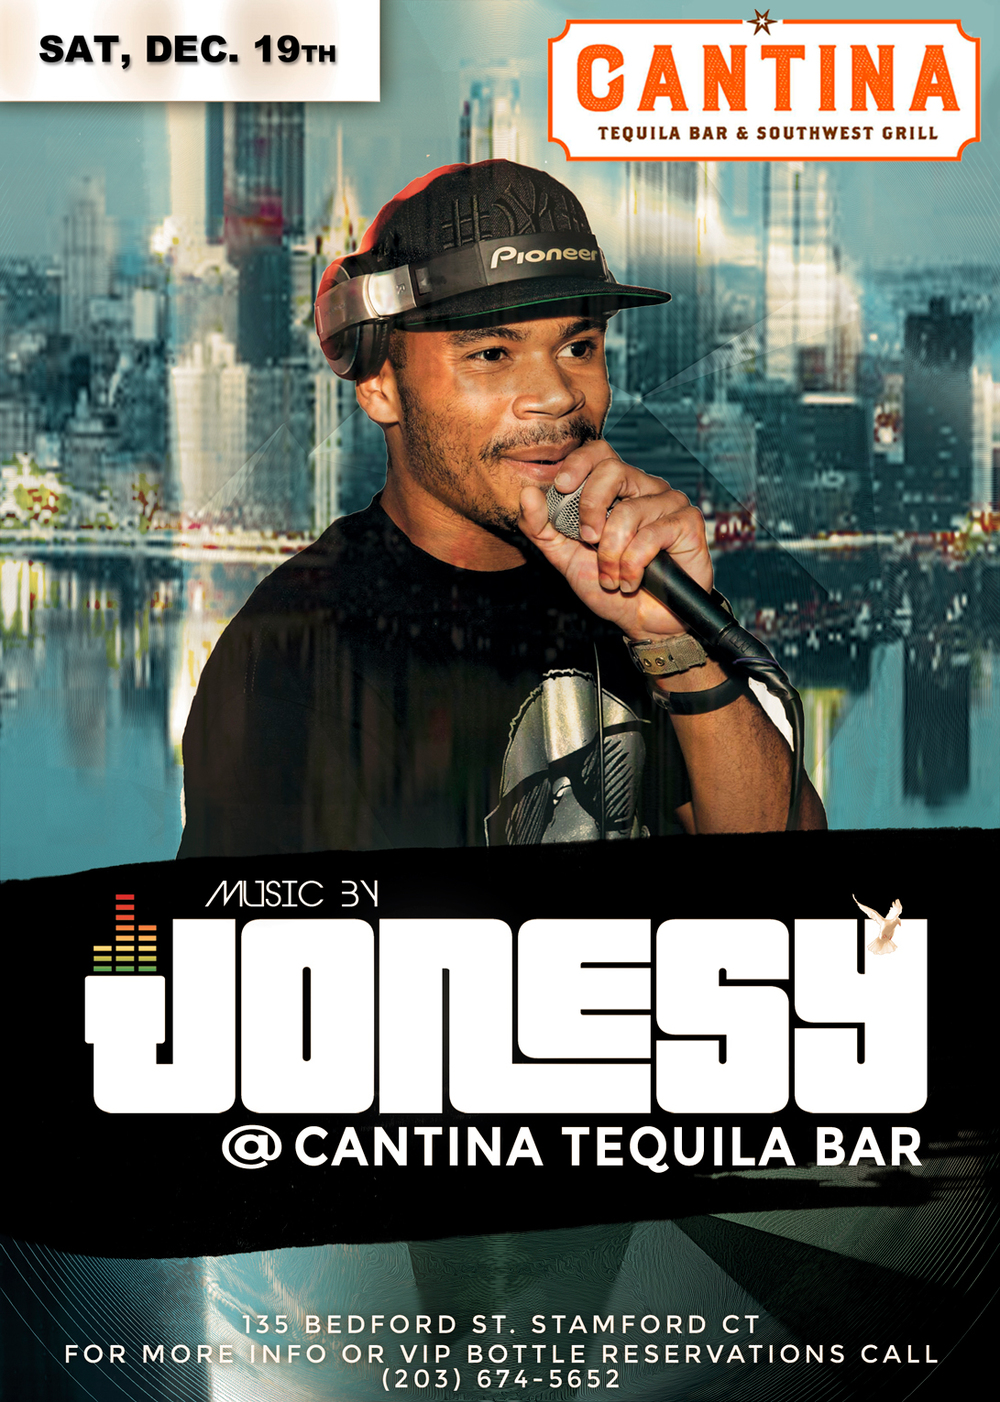 SATURDAY, DEC. 19TH JOIN US AT CANTINA TEQUILA BAR 9PM FOR MUSIC BY JONESY!  NO COVER, SEE YOU THERE!